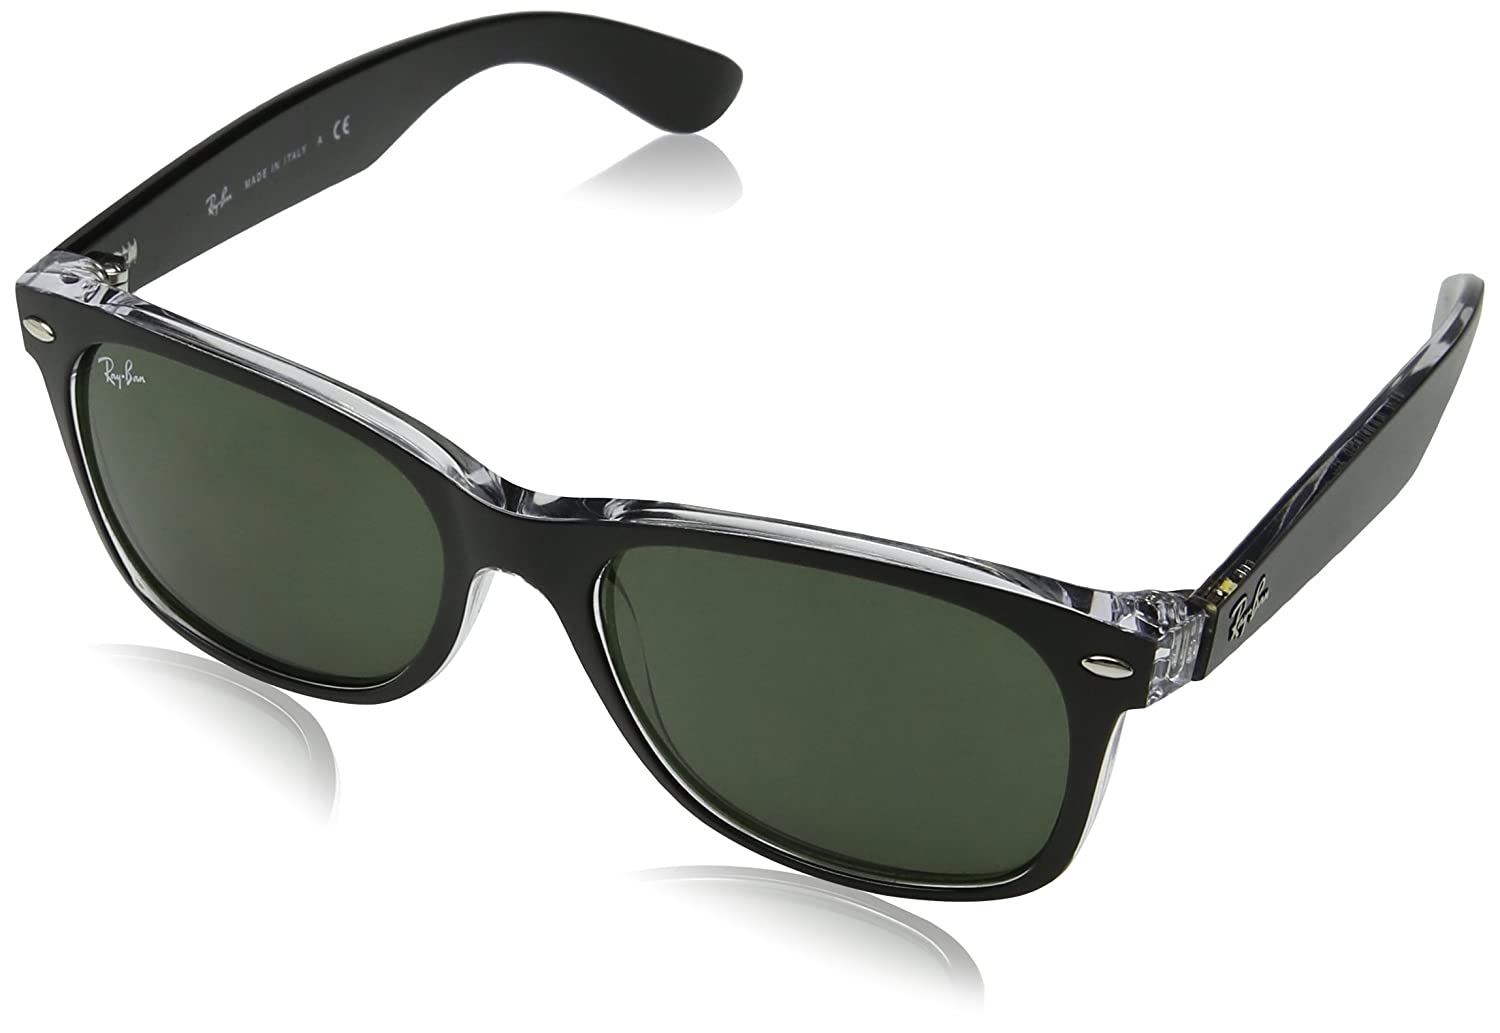 Ray-Ban rb2132 Unisex New Wayfarer Polarized Sunglasses